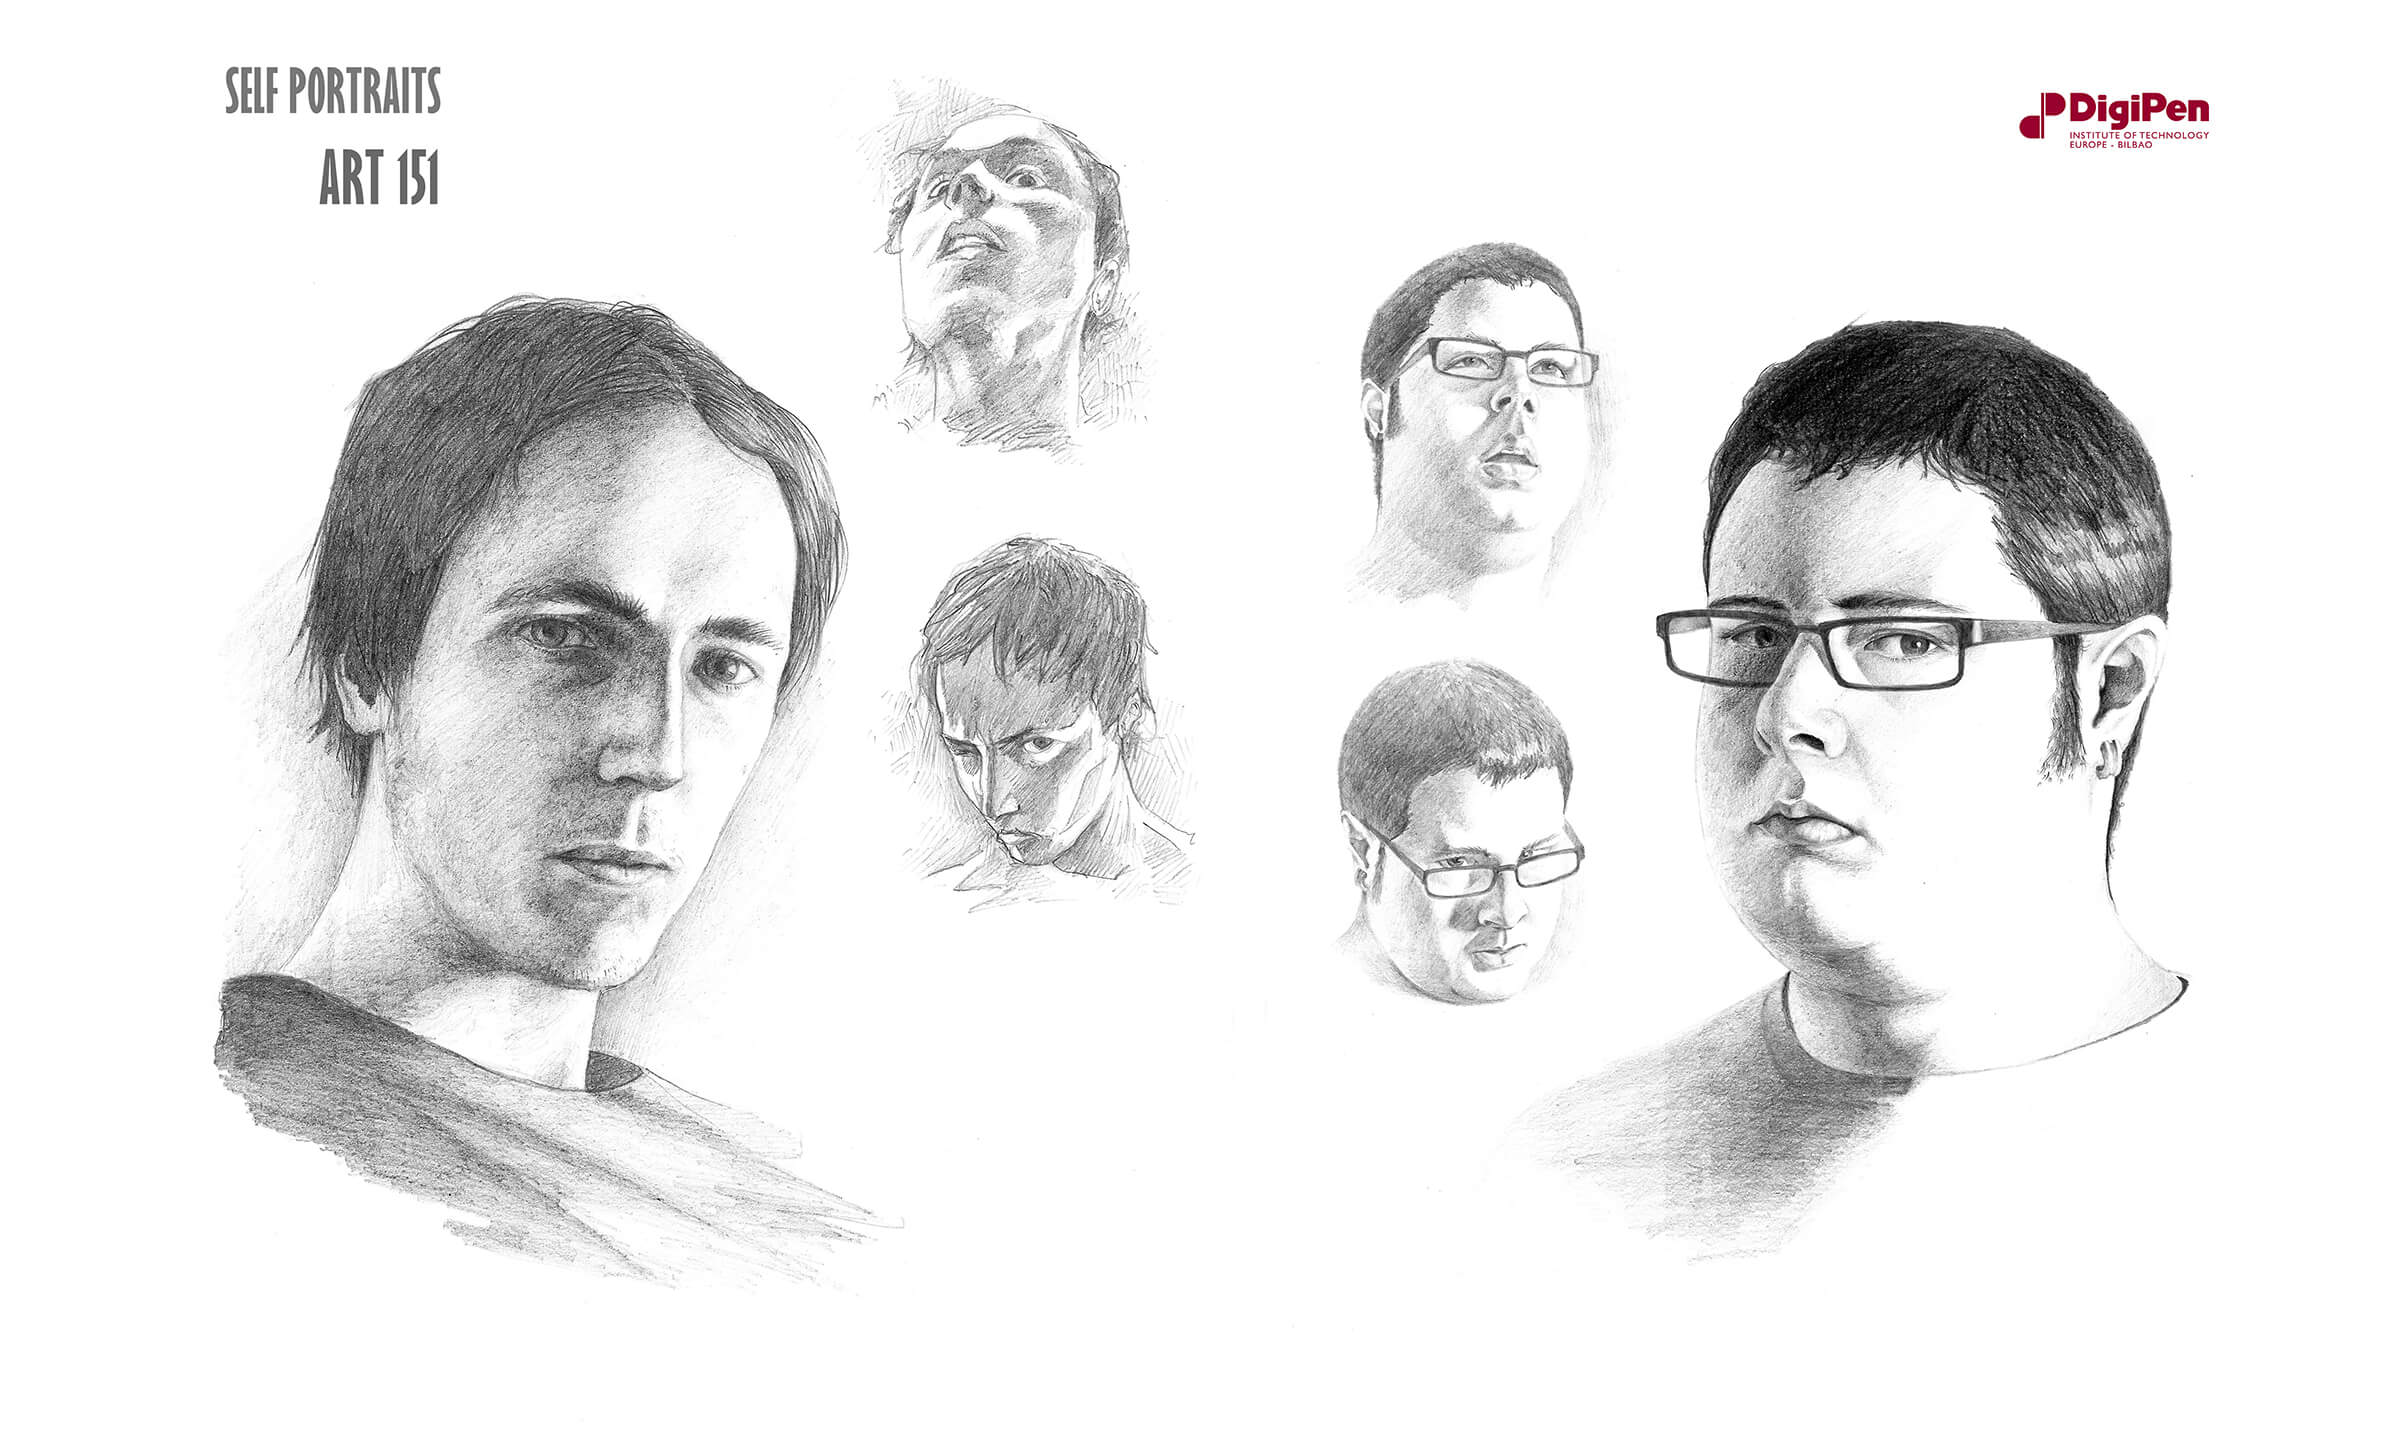 Black-and-white self portraits of two male artists' faces from different angles, one wears glasses and two earrings.